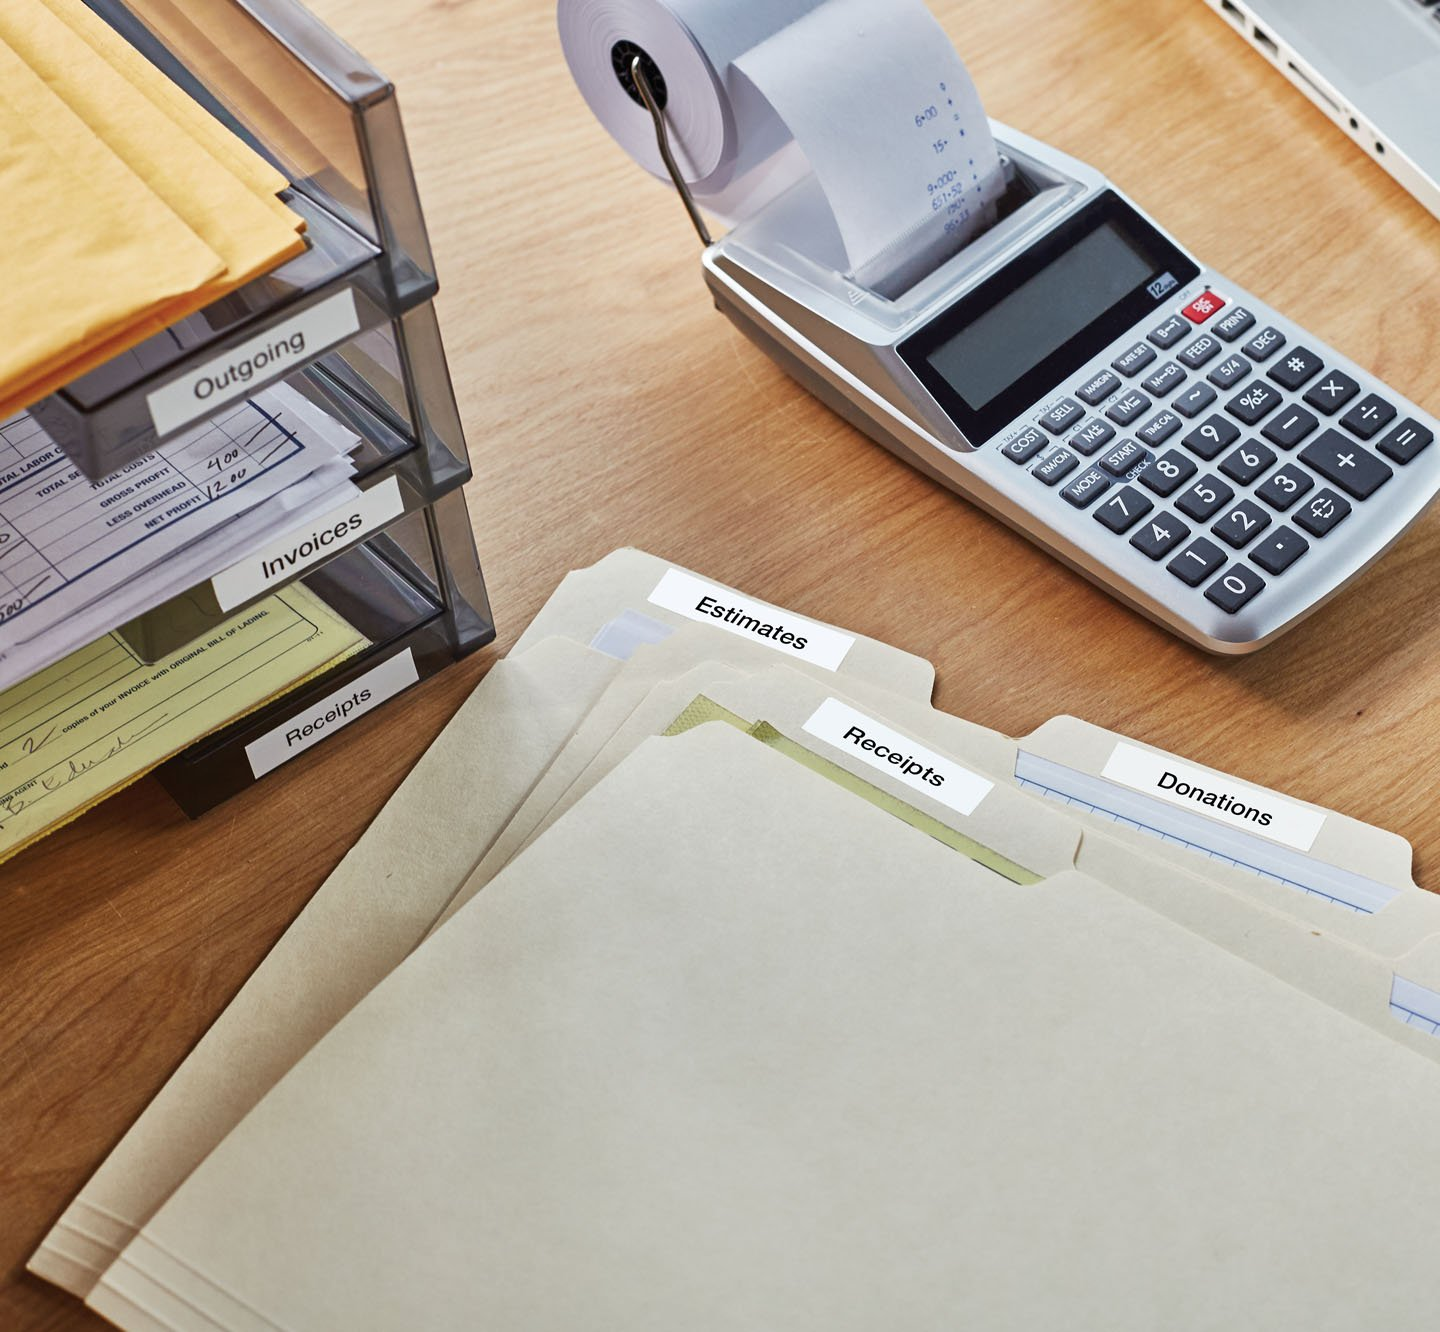 Labeled files and a labeled file organizer on a desk.